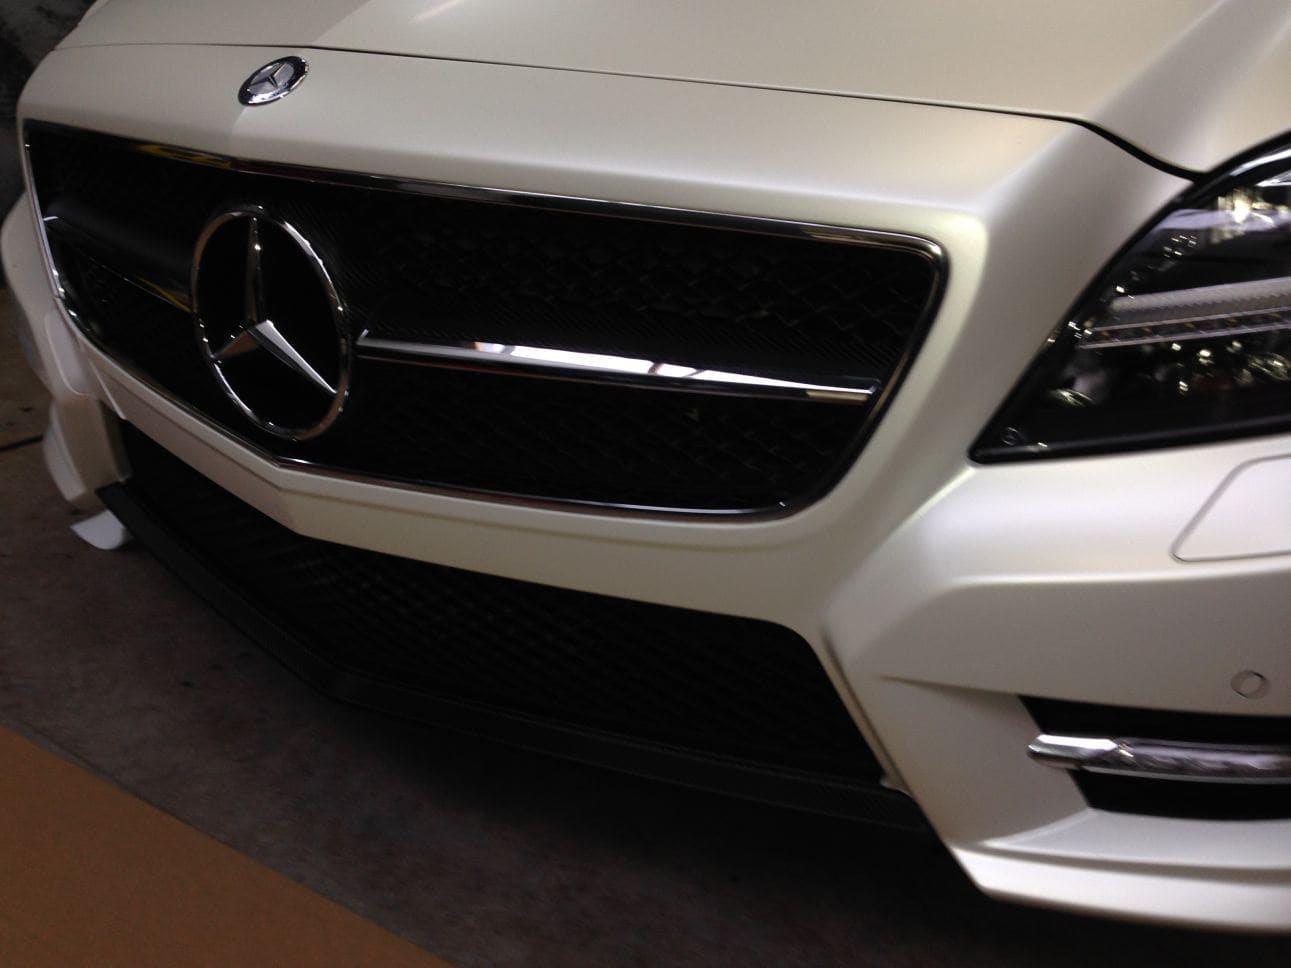 Mercedes CLS met White Satin Pearl Wrap, Carwrapping door Wrapmyride.nu Foto-nr:6199, ©2021